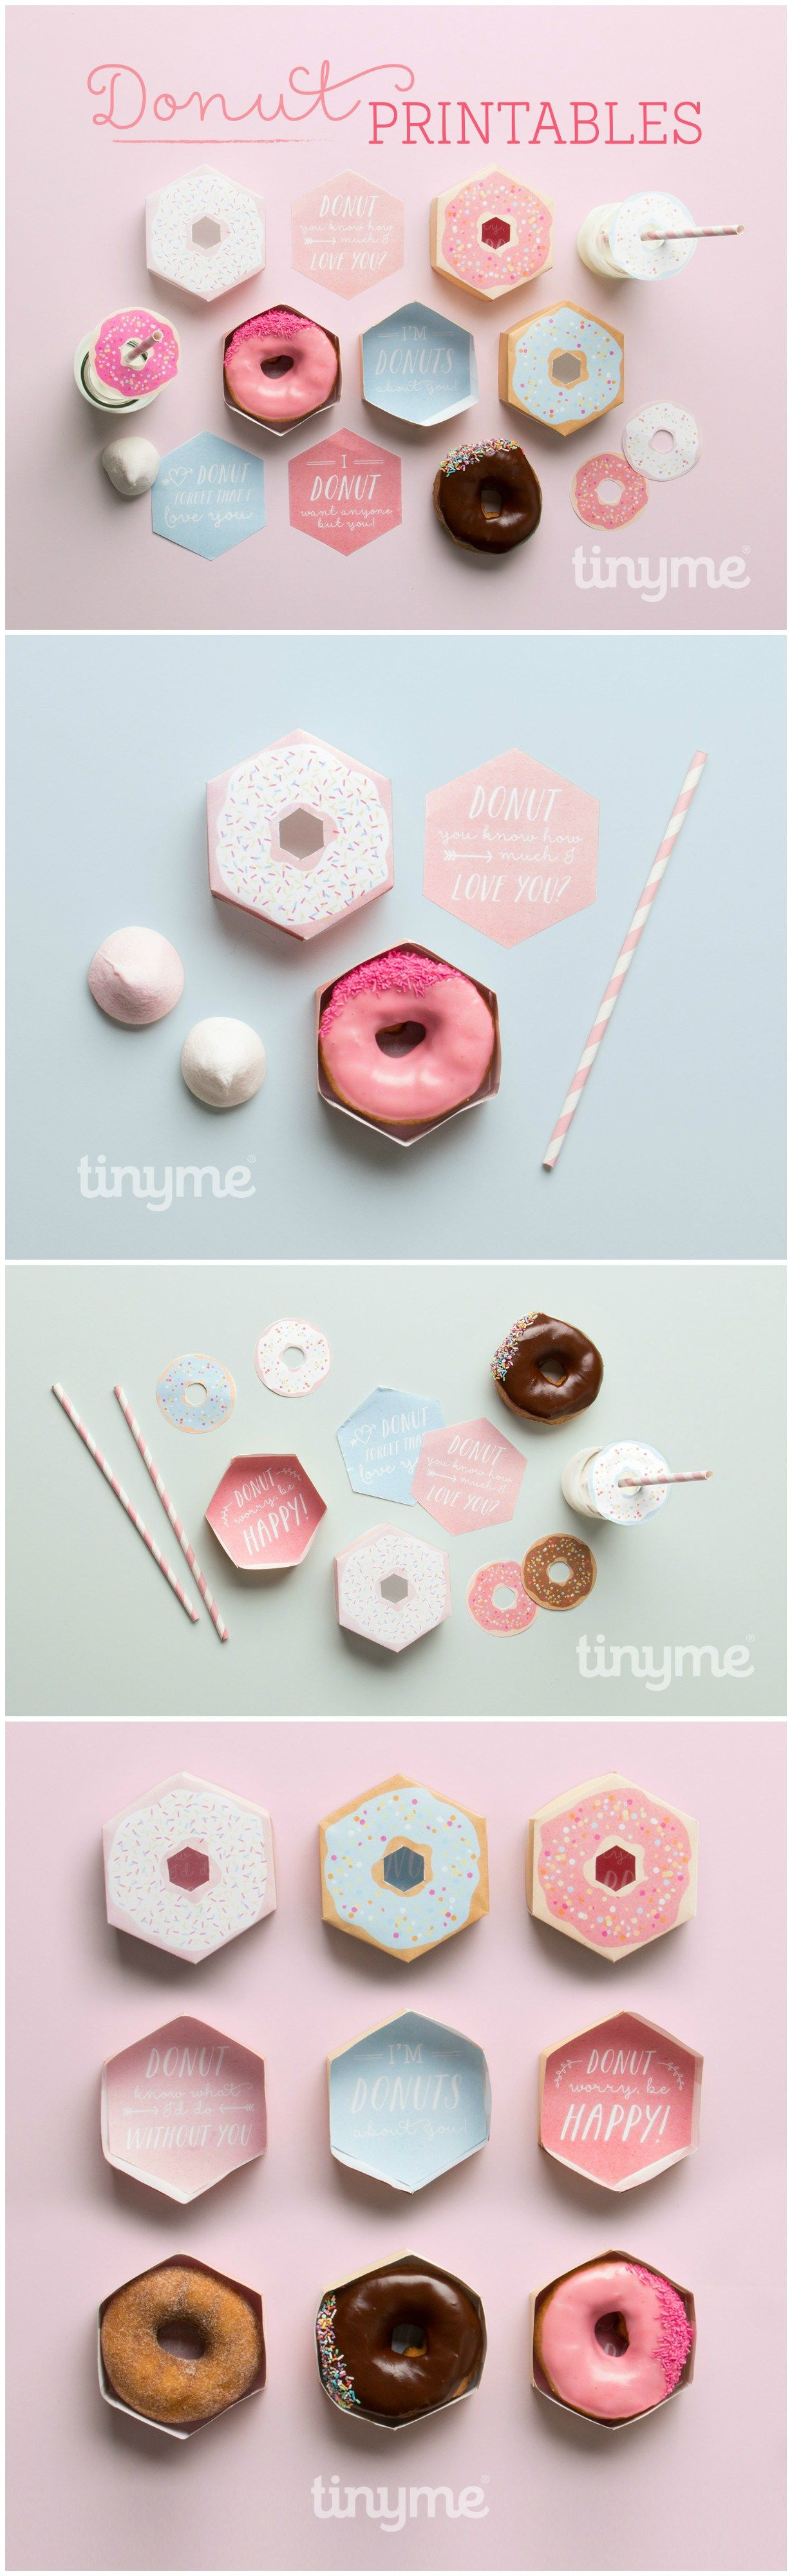 donut box printables sweet messages donuts and free printable